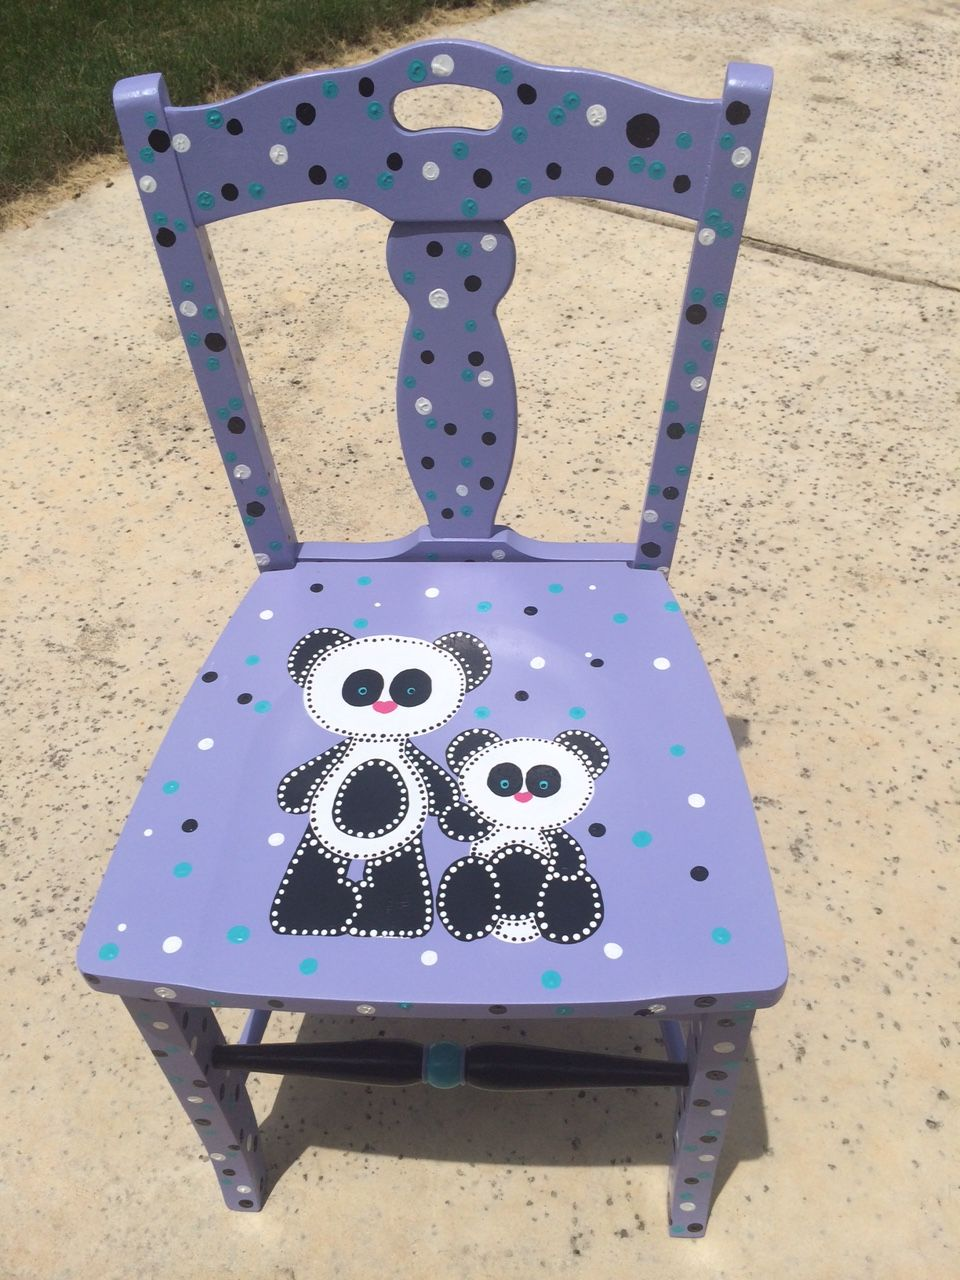 Panda Polka designed by Cyndy and Caralyn Sutton (2015 Chair-ity Event)